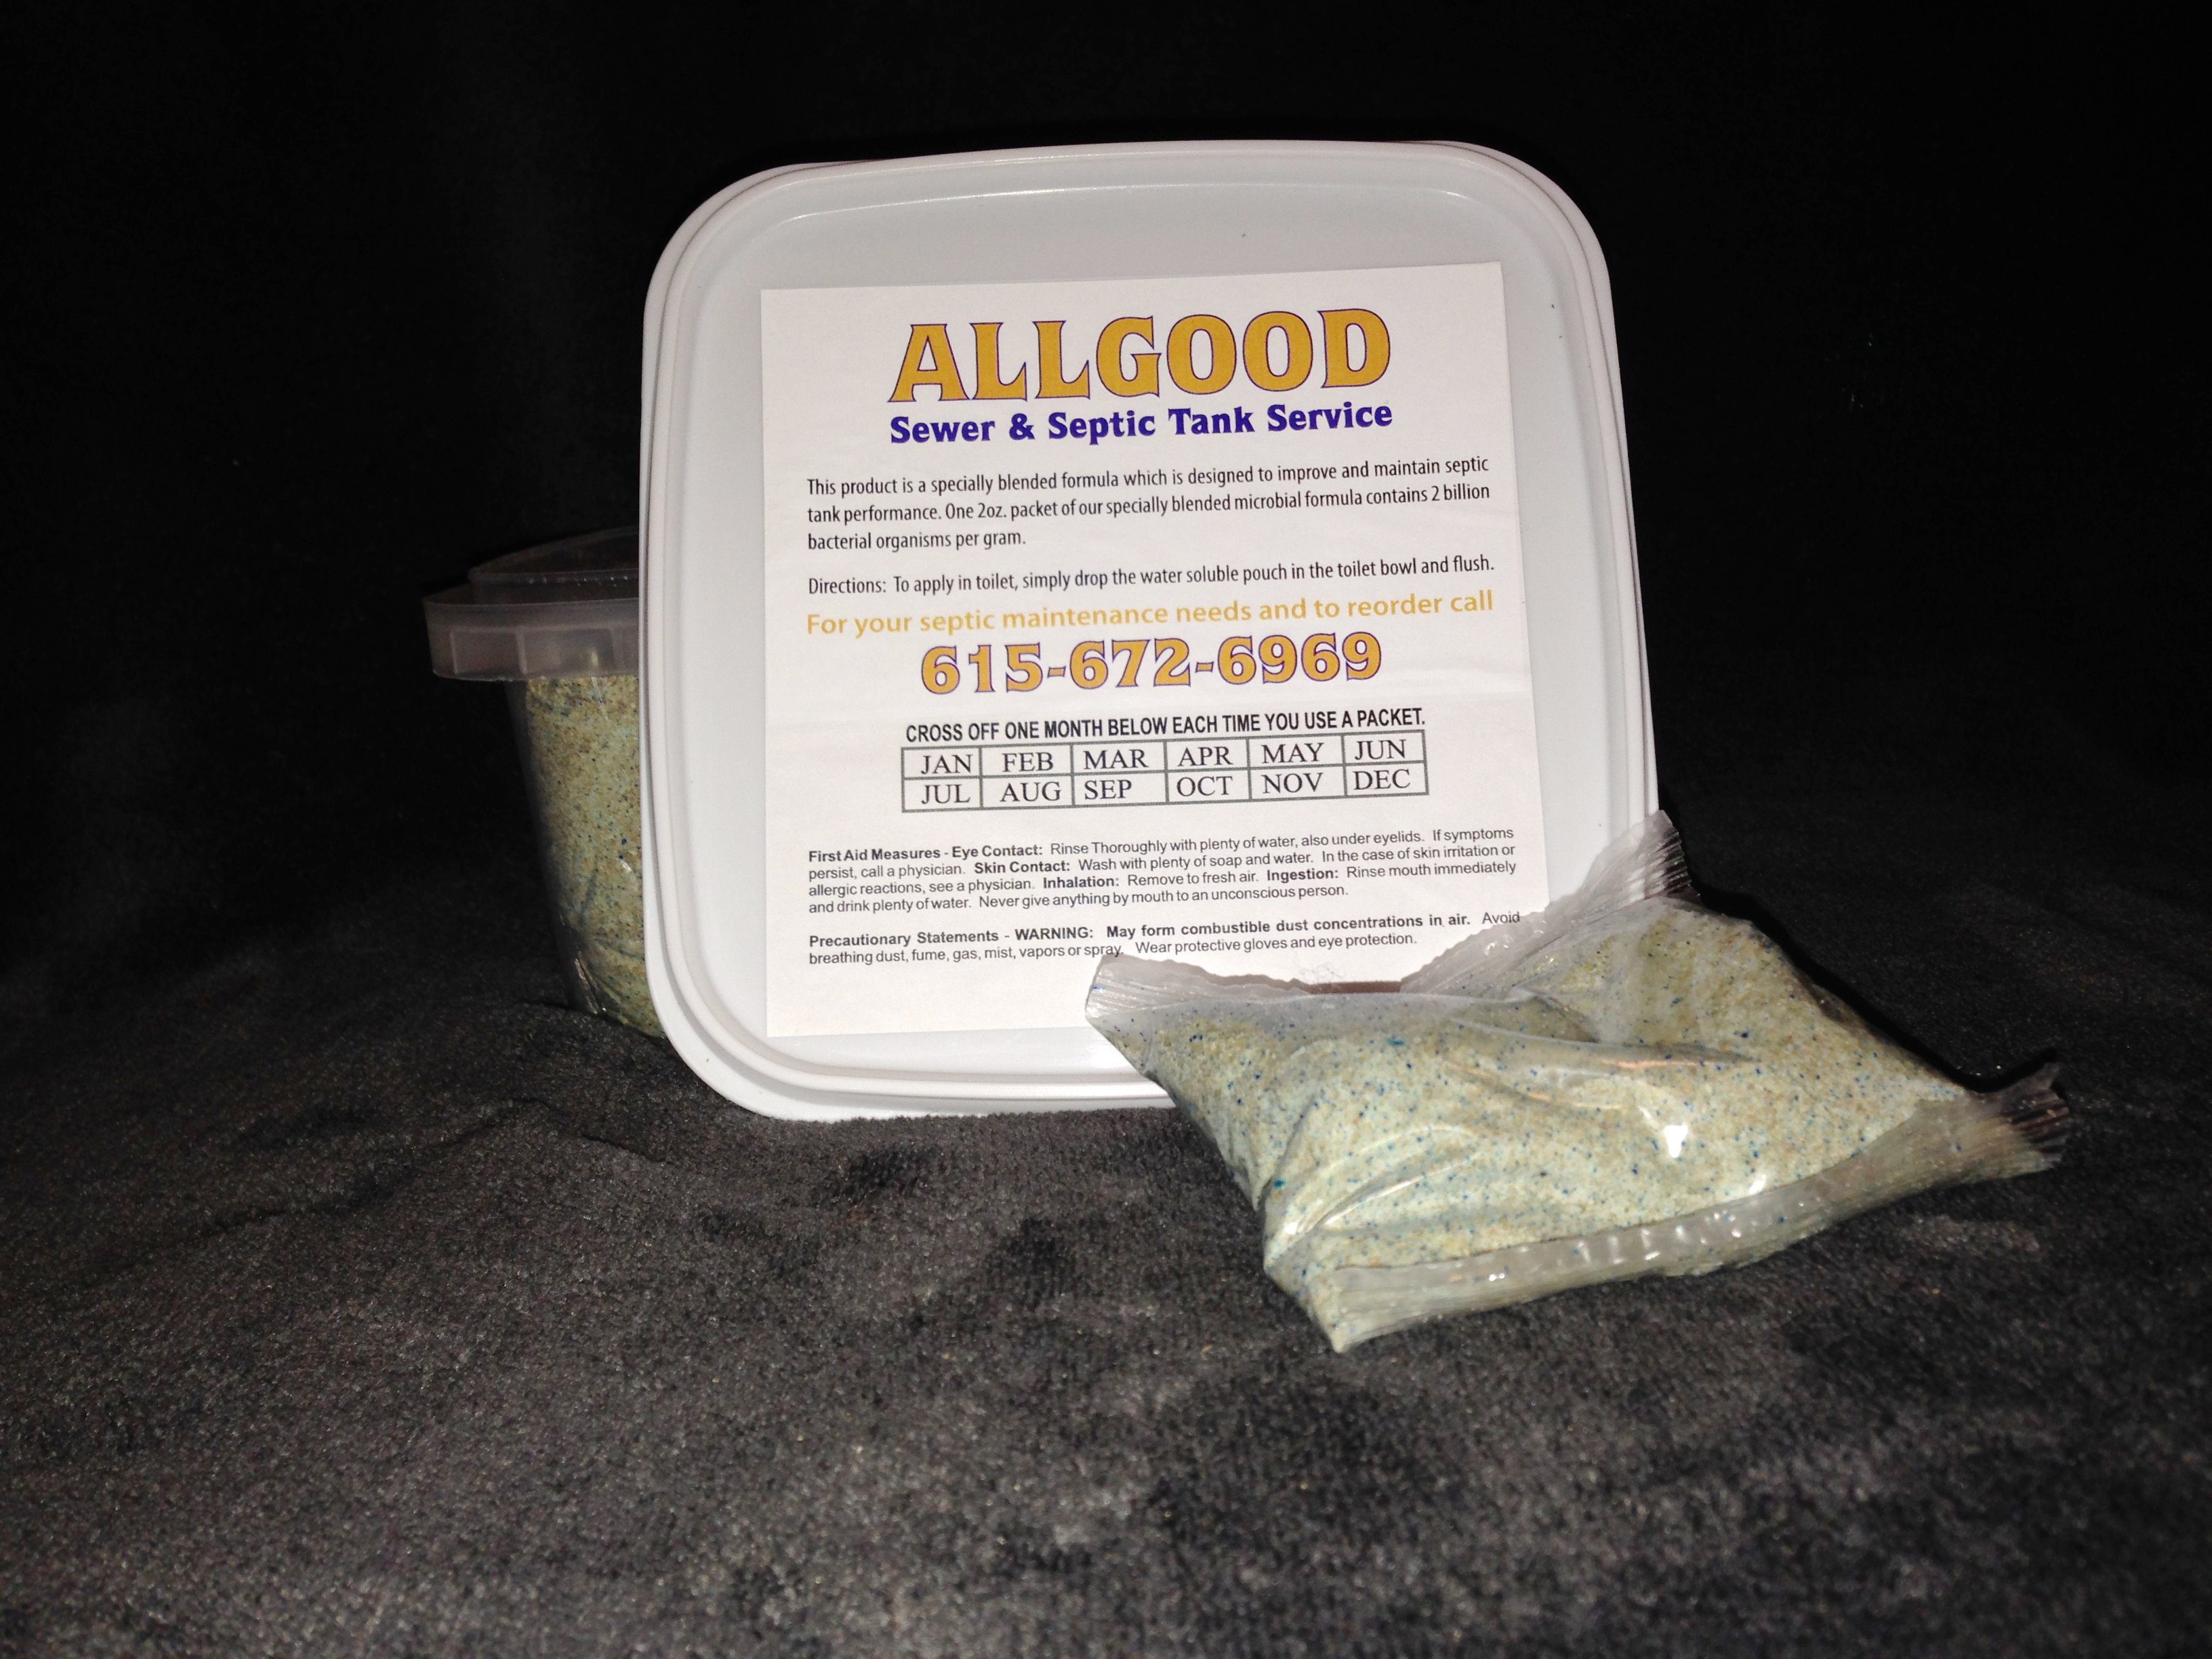 packet & container of septic enzymes from Allgood